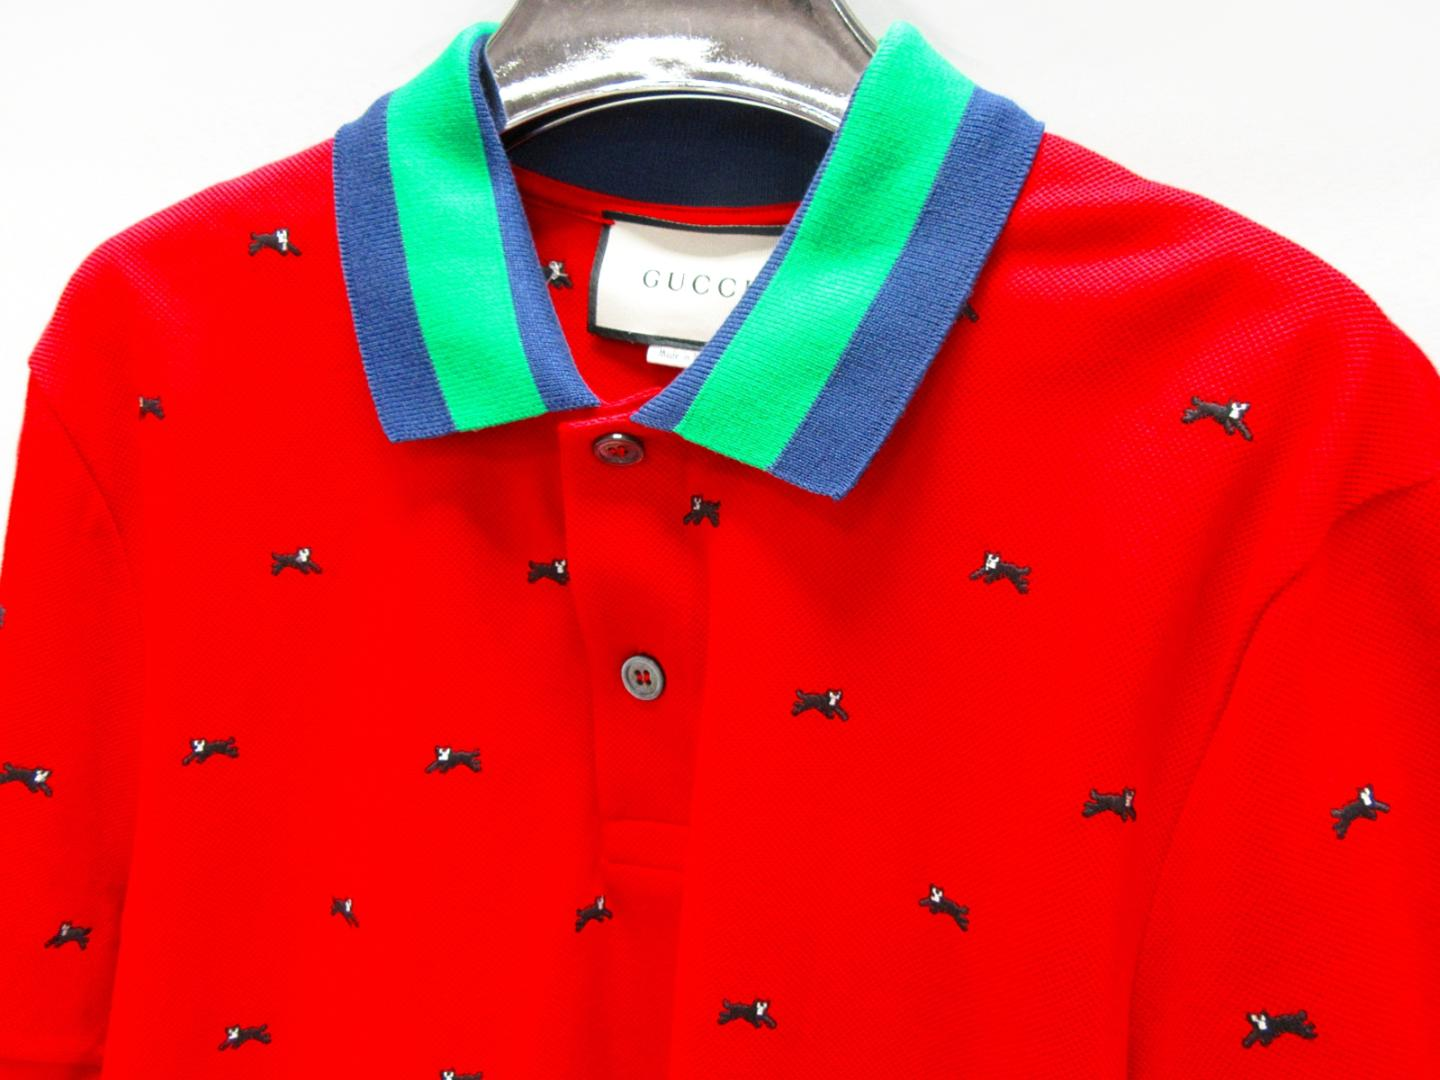 professional info for 2019 professional Gucci polo shirt men cotton (93%)x polyurethane (7%) red (475113)